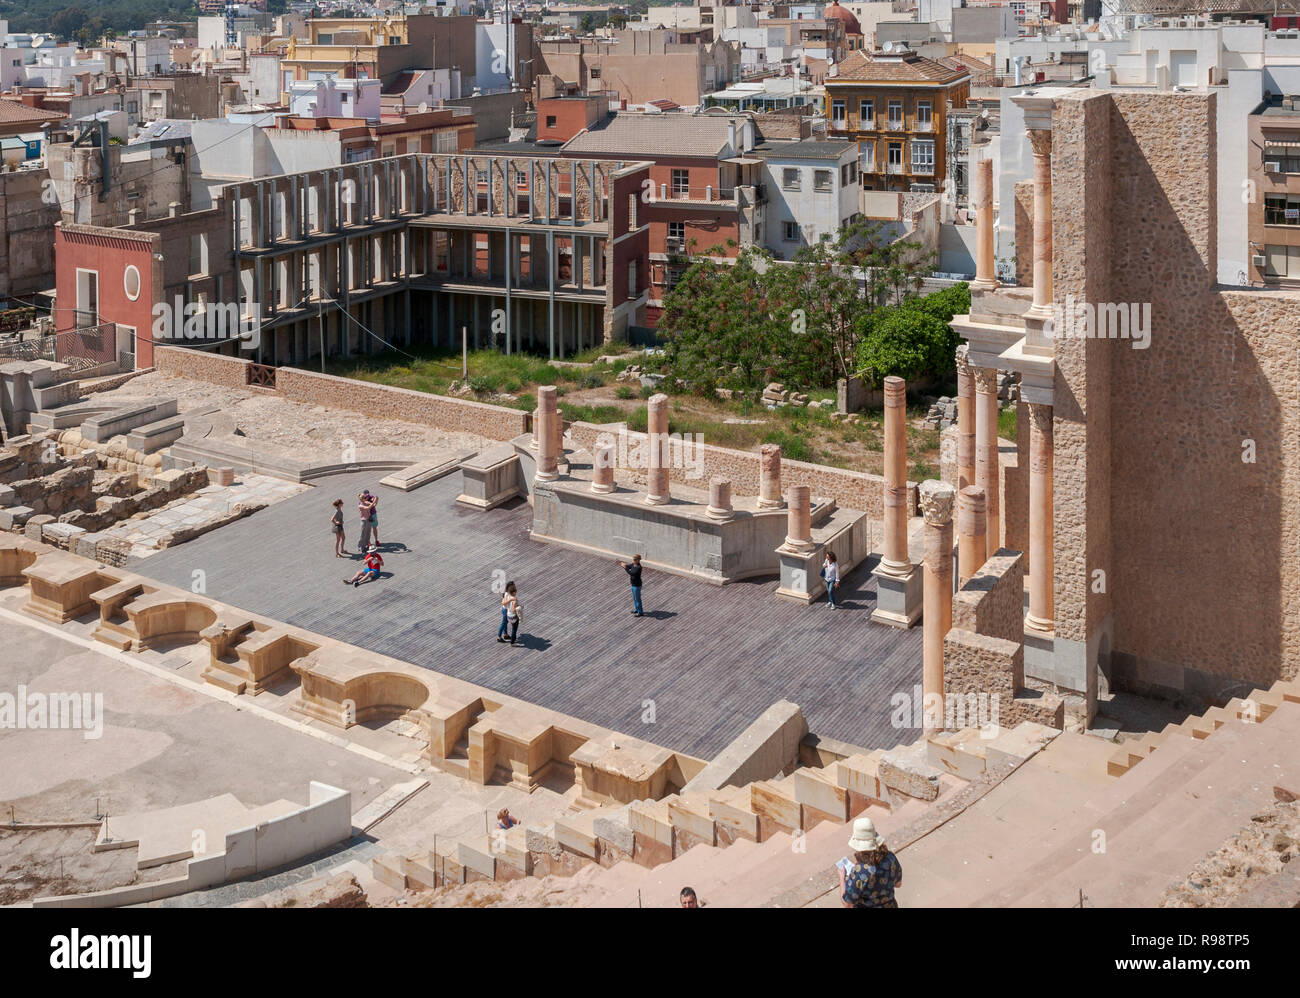 CARTAGENA, SPAIN – APRIL 12, 2017: Views of the Roman Theatre of Cartagena, Spain. It was built between 5 and 1 BC. Stock Photo